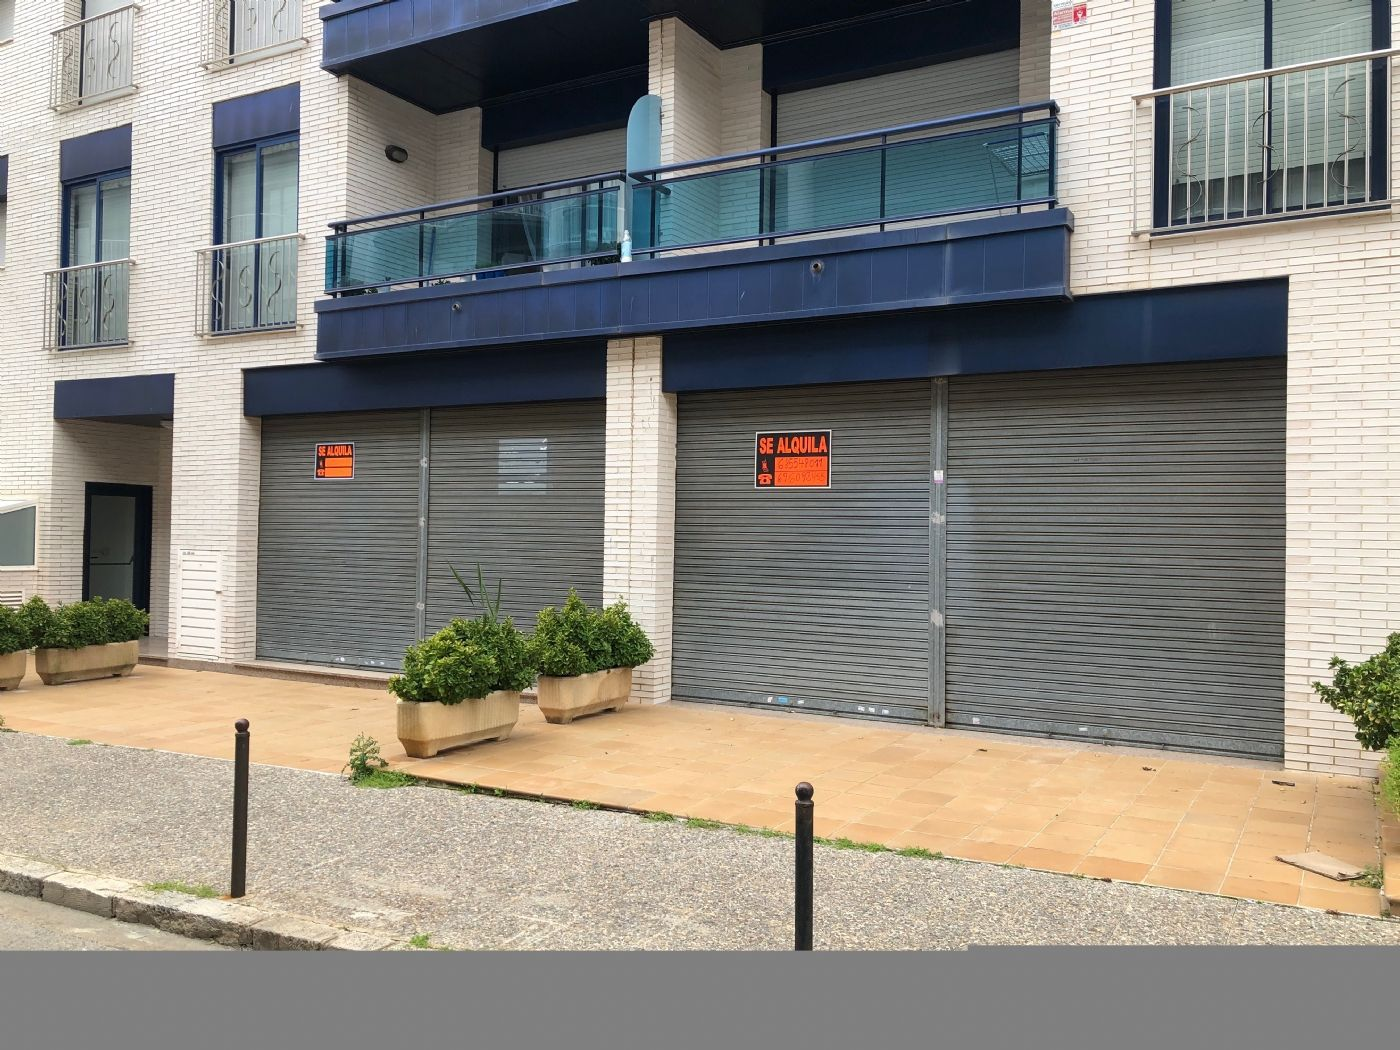 Local Comercial en Carrer barcelona, 23. Ocasion local comercial en alquiler